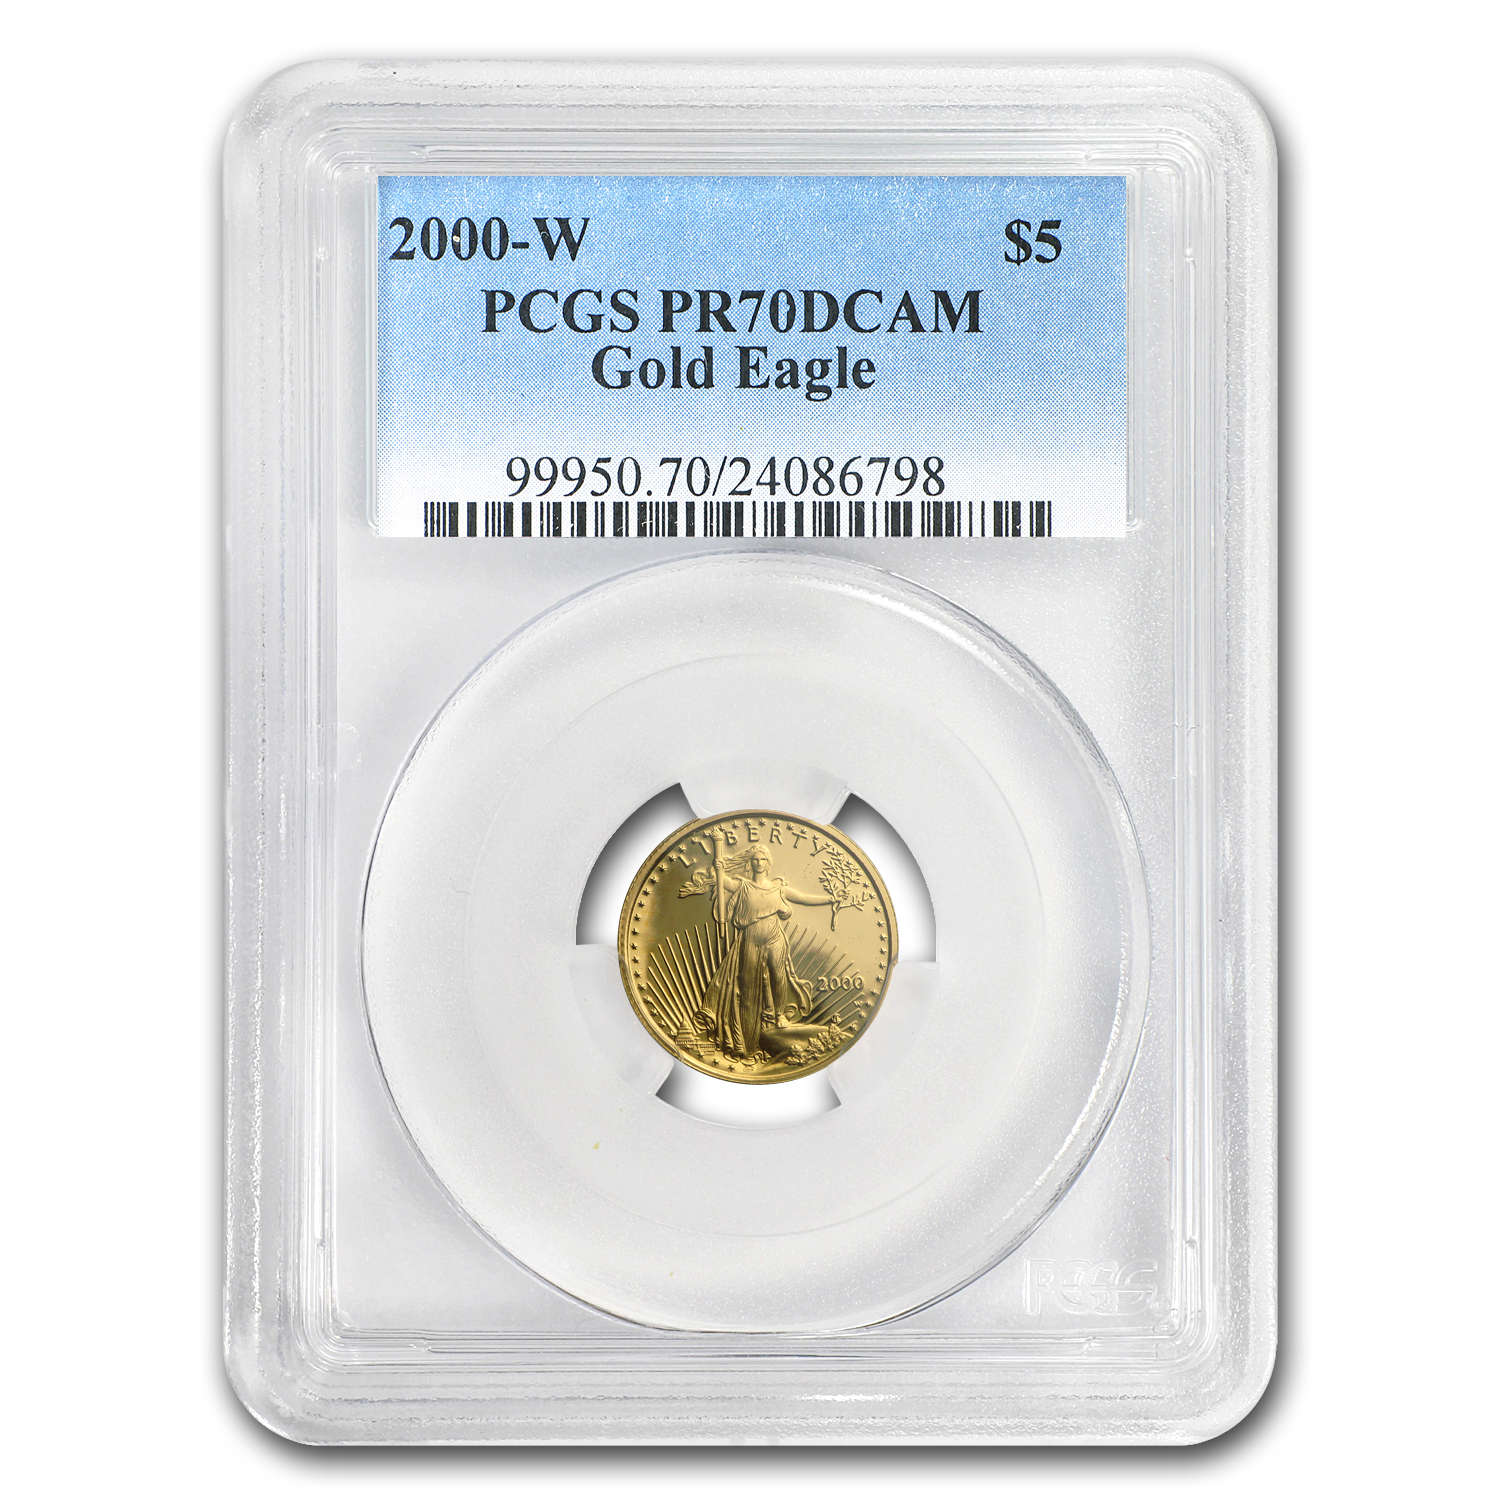 2000-W 1/10 oz Proof Gold American Eagle PR-70 PCGS